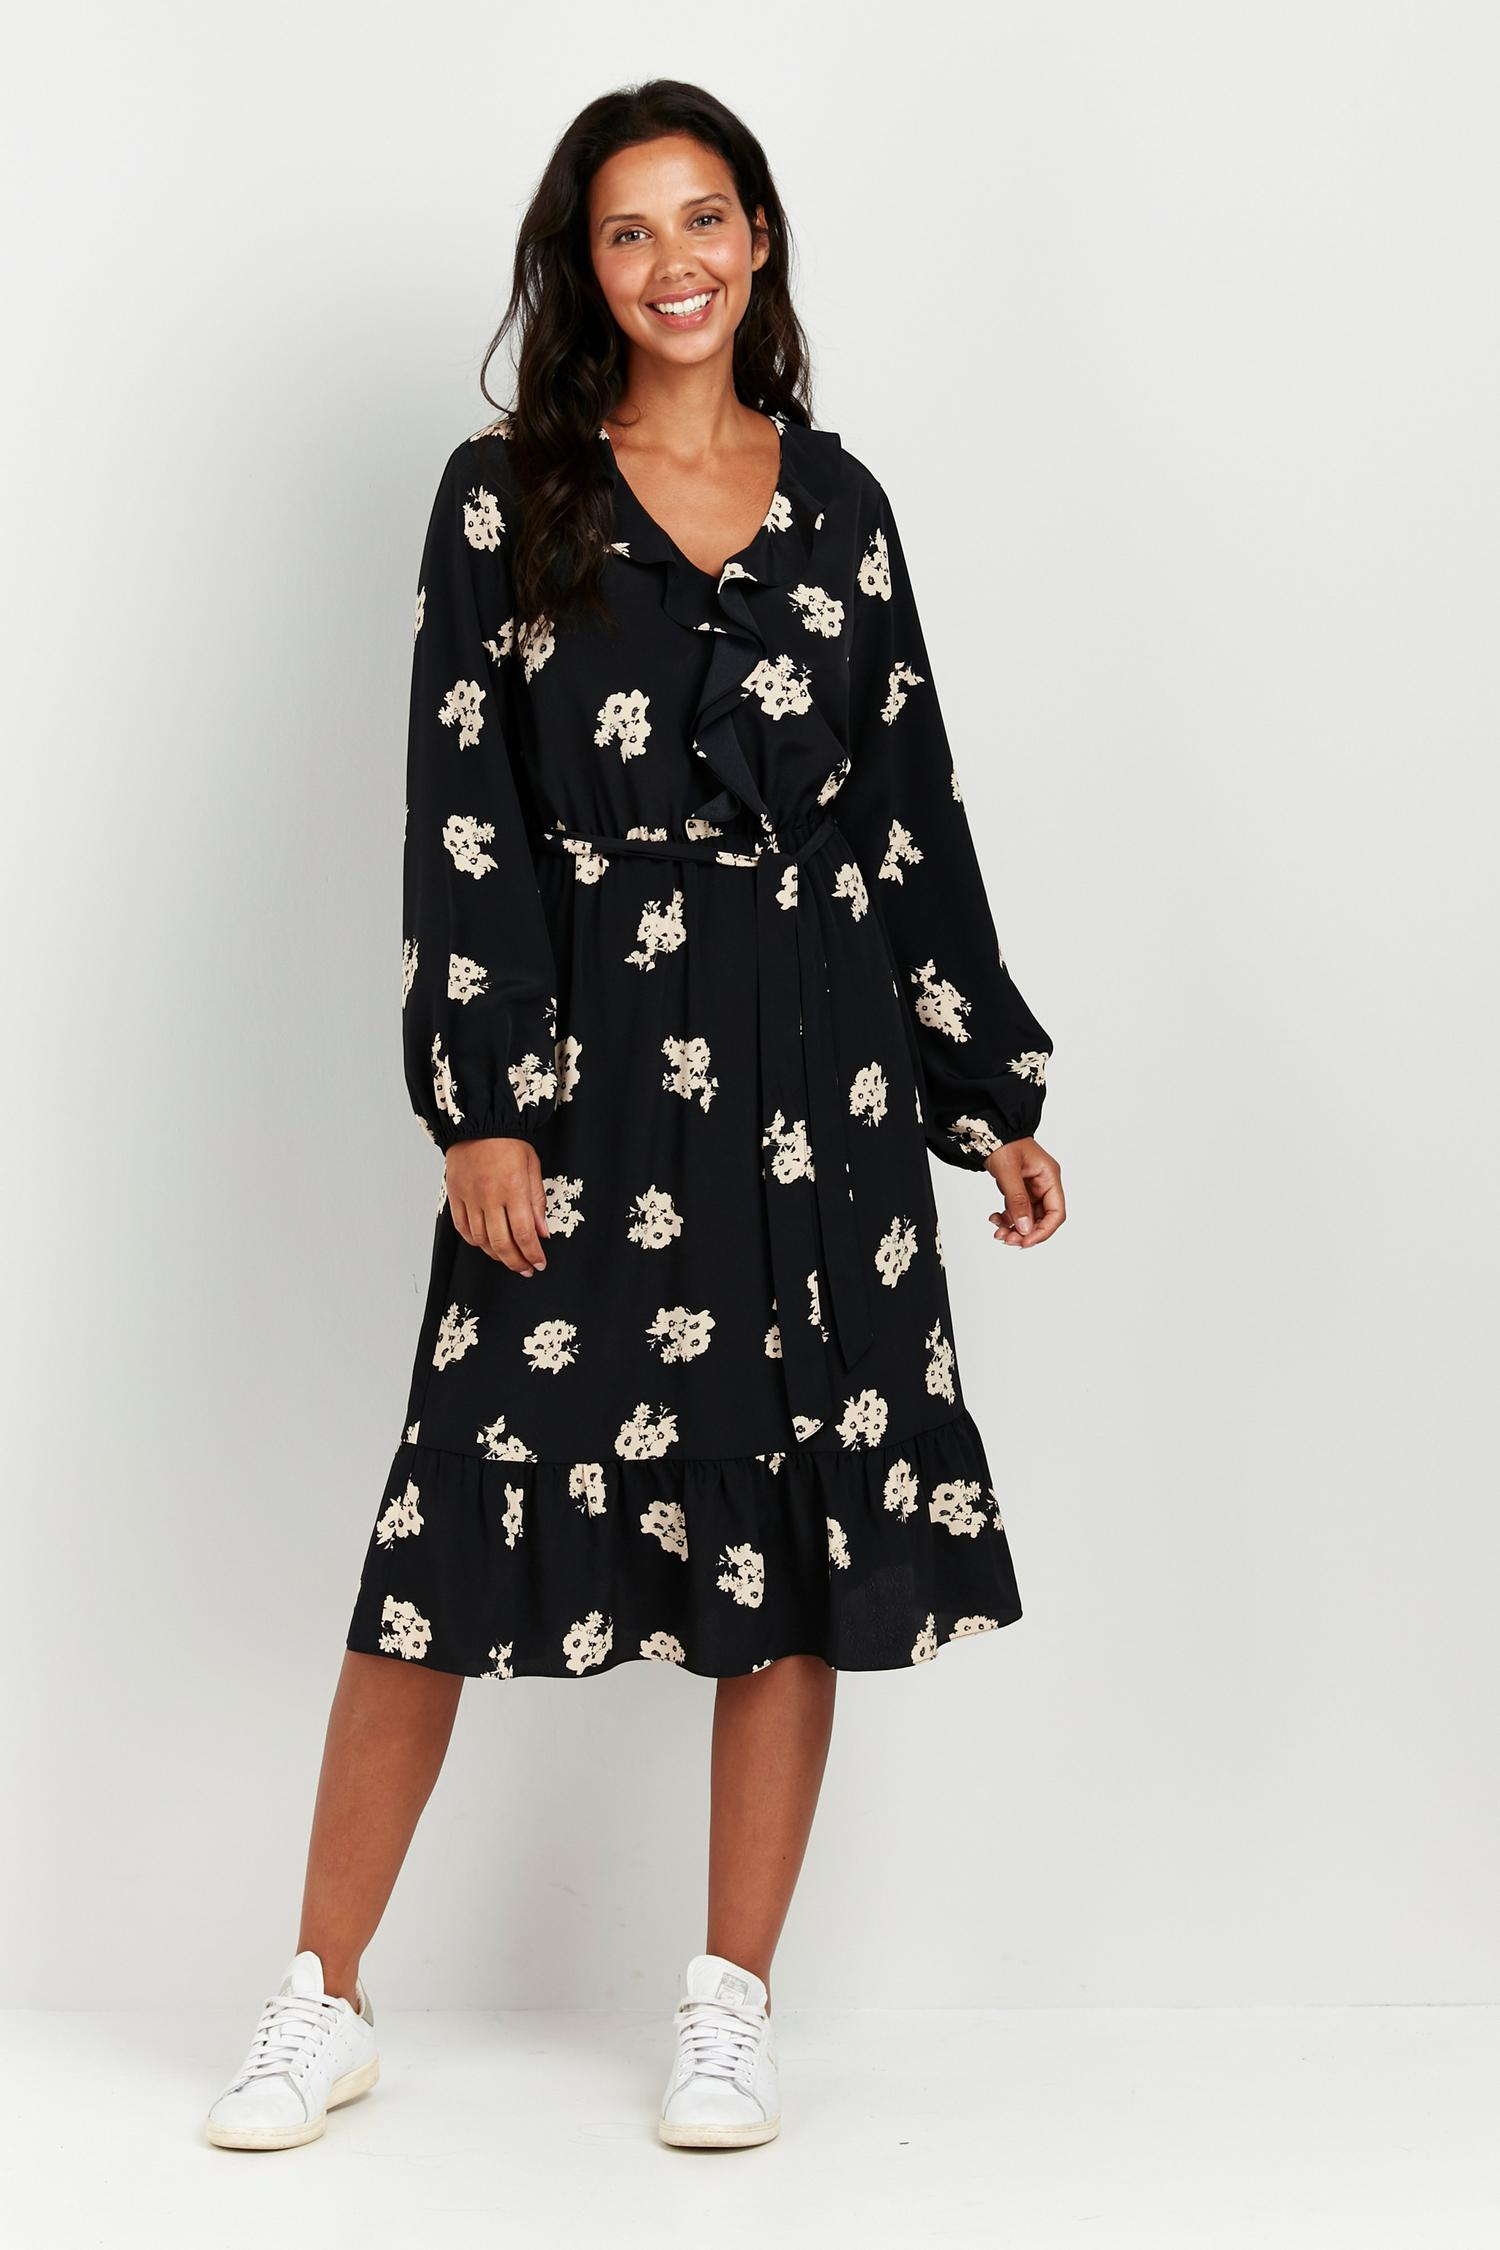 165 Black Floral Print Ruffle Front Midi Dress image number 1